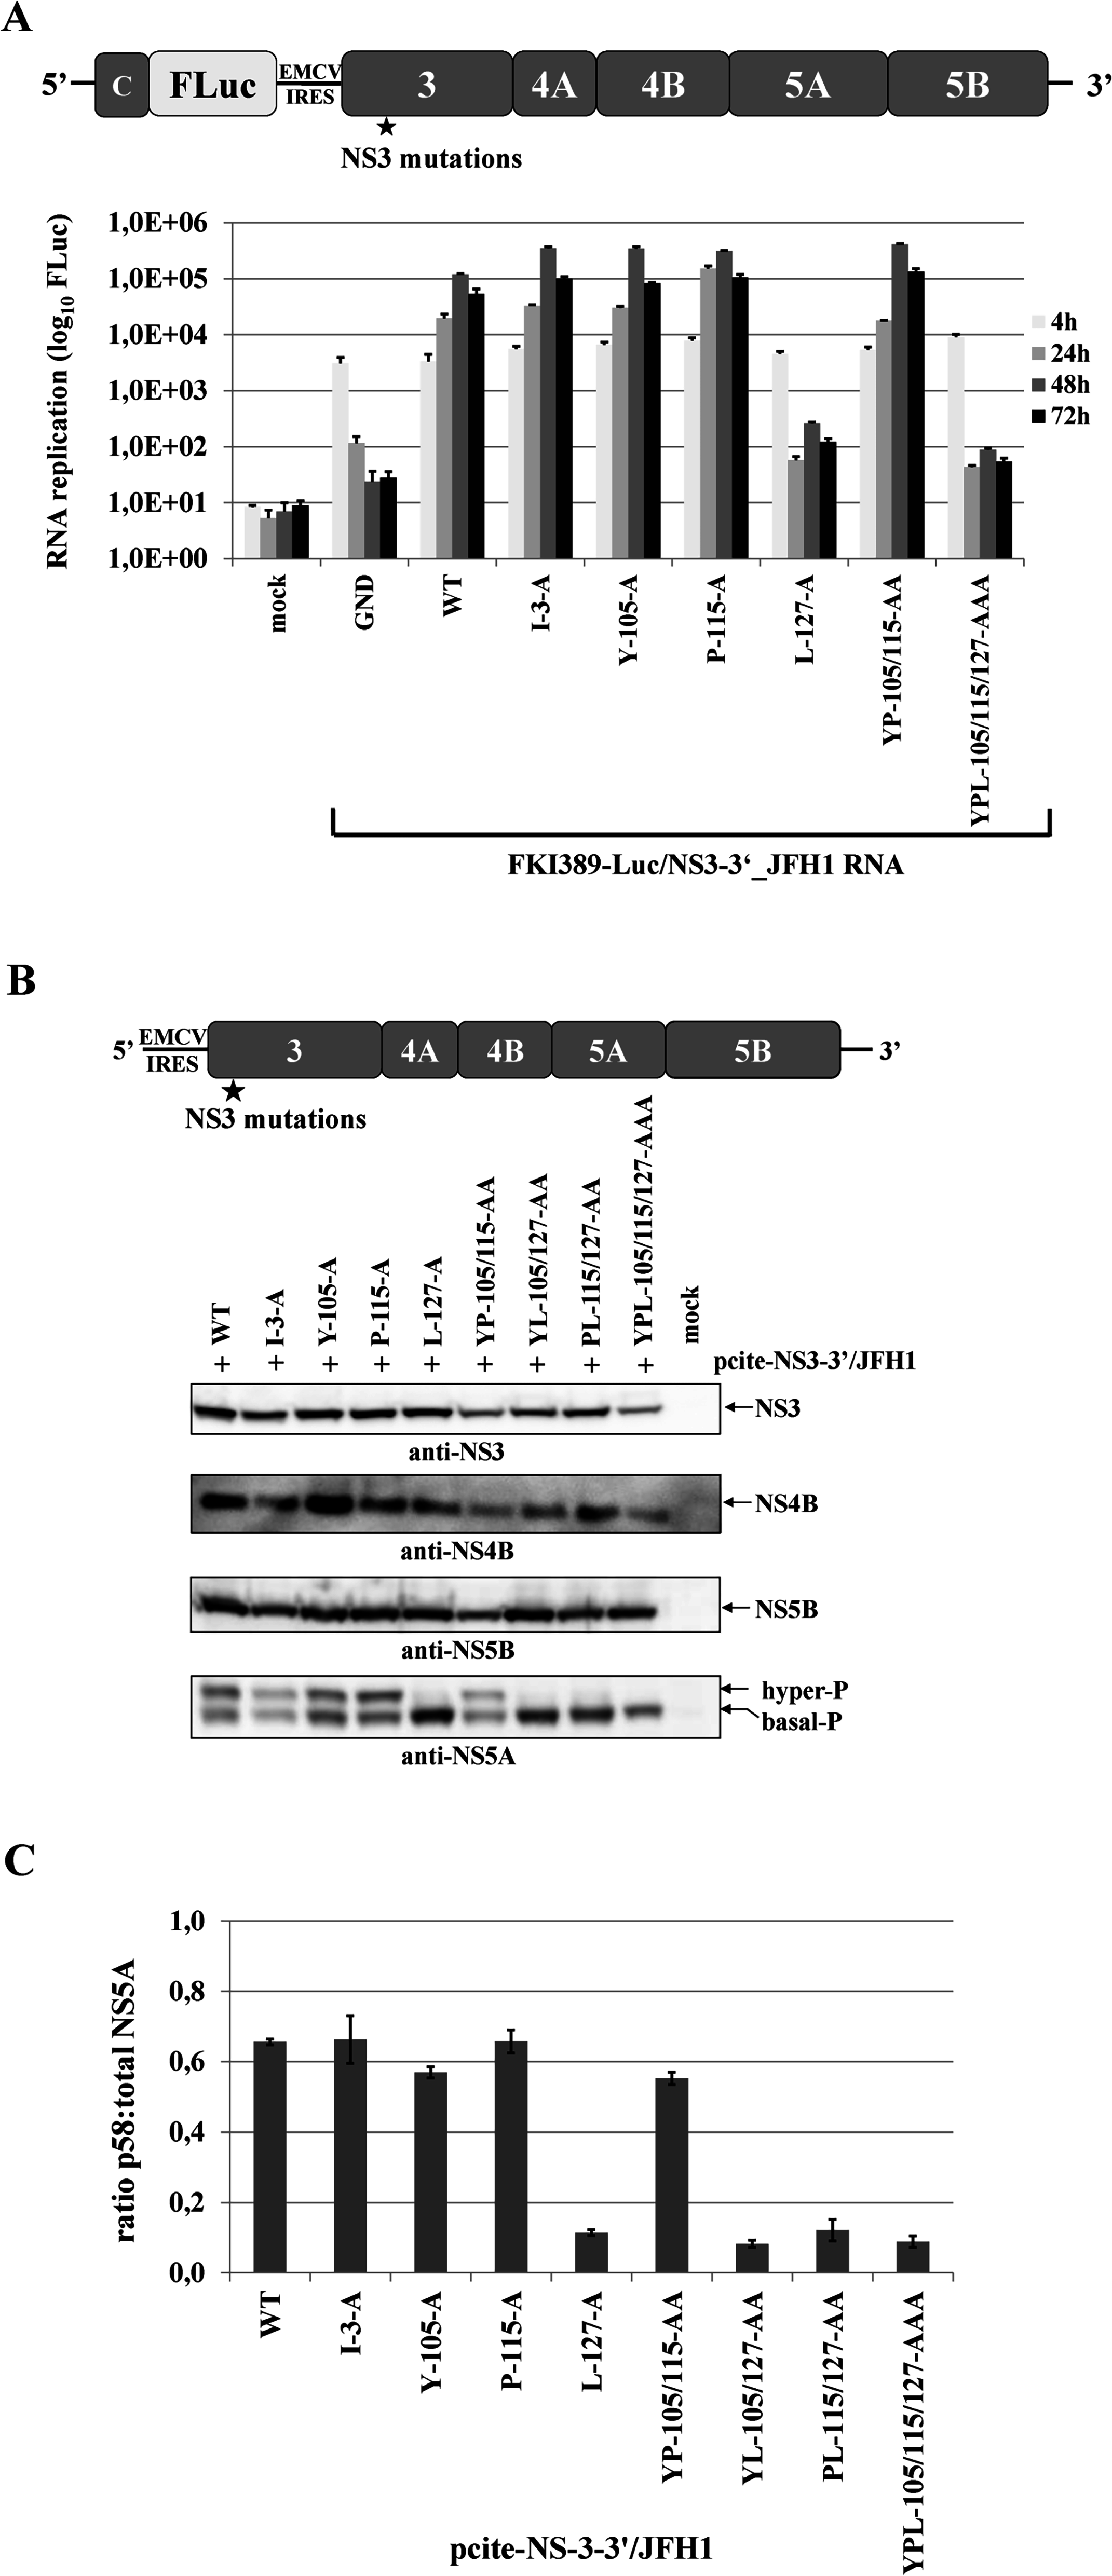 Mutational analysis of the hydrophobic NS3 surface area in the context of a HCV genotype 2a NS3-5B replicon.